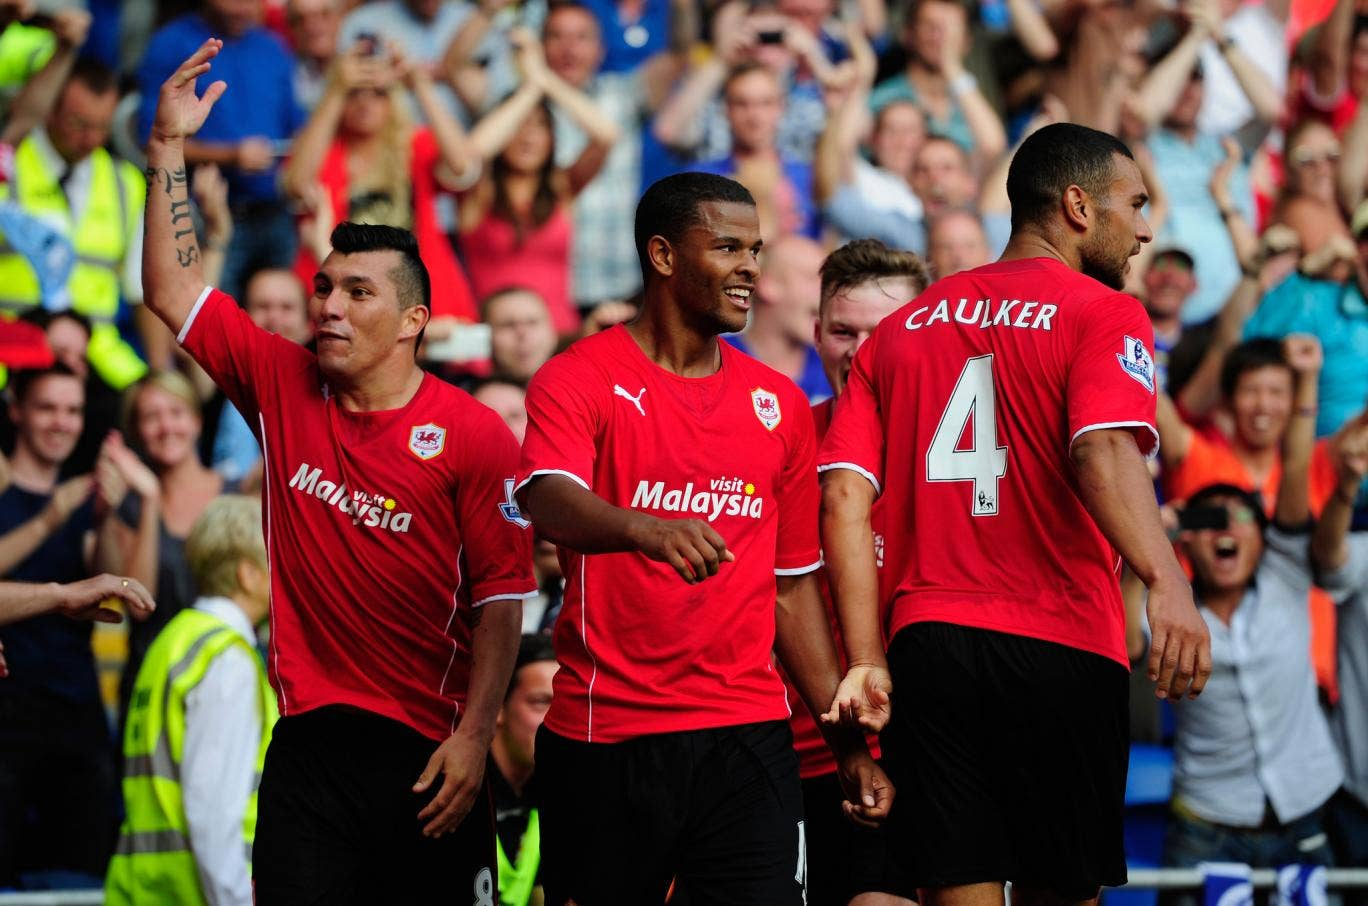 CARDIFF, WALES - AUGUST 25: Cardiff City scorers Fraizer Campbell (c) and team mates lead the celebrations after the third Cardiff goal during the Barclays Premier League match between Cardiff City and Manchester City at Cardiff City Stadium.